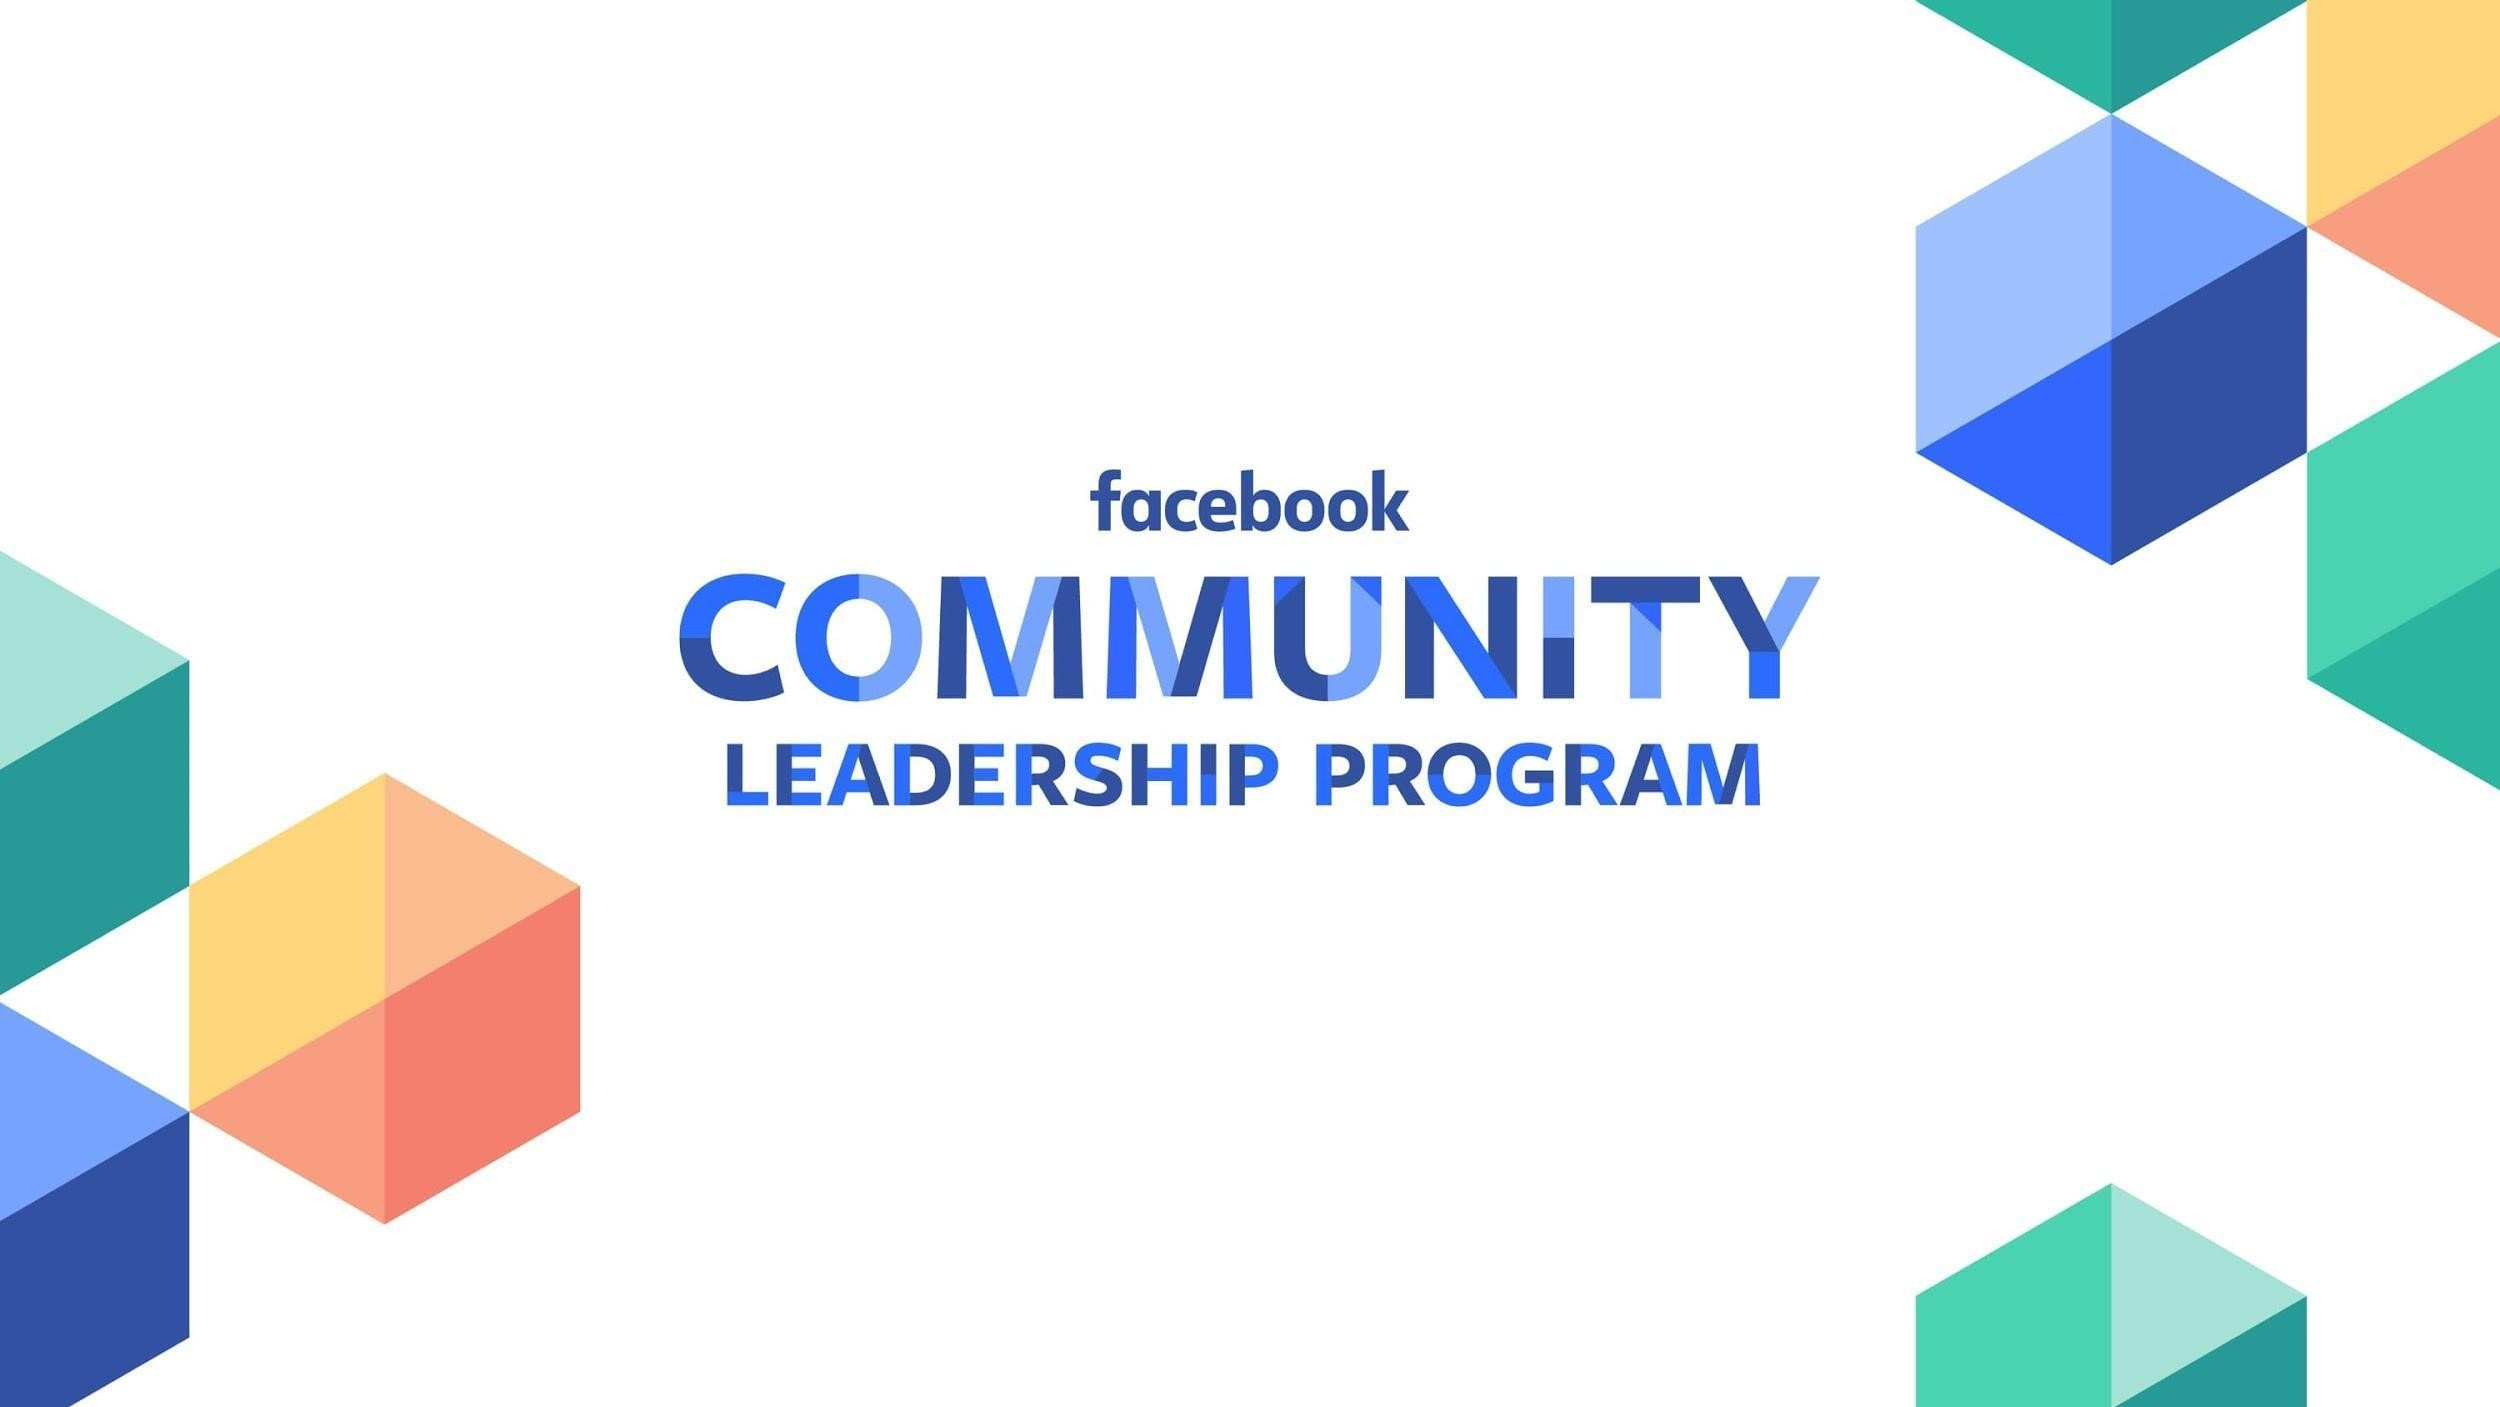 Facebook community leadrship program